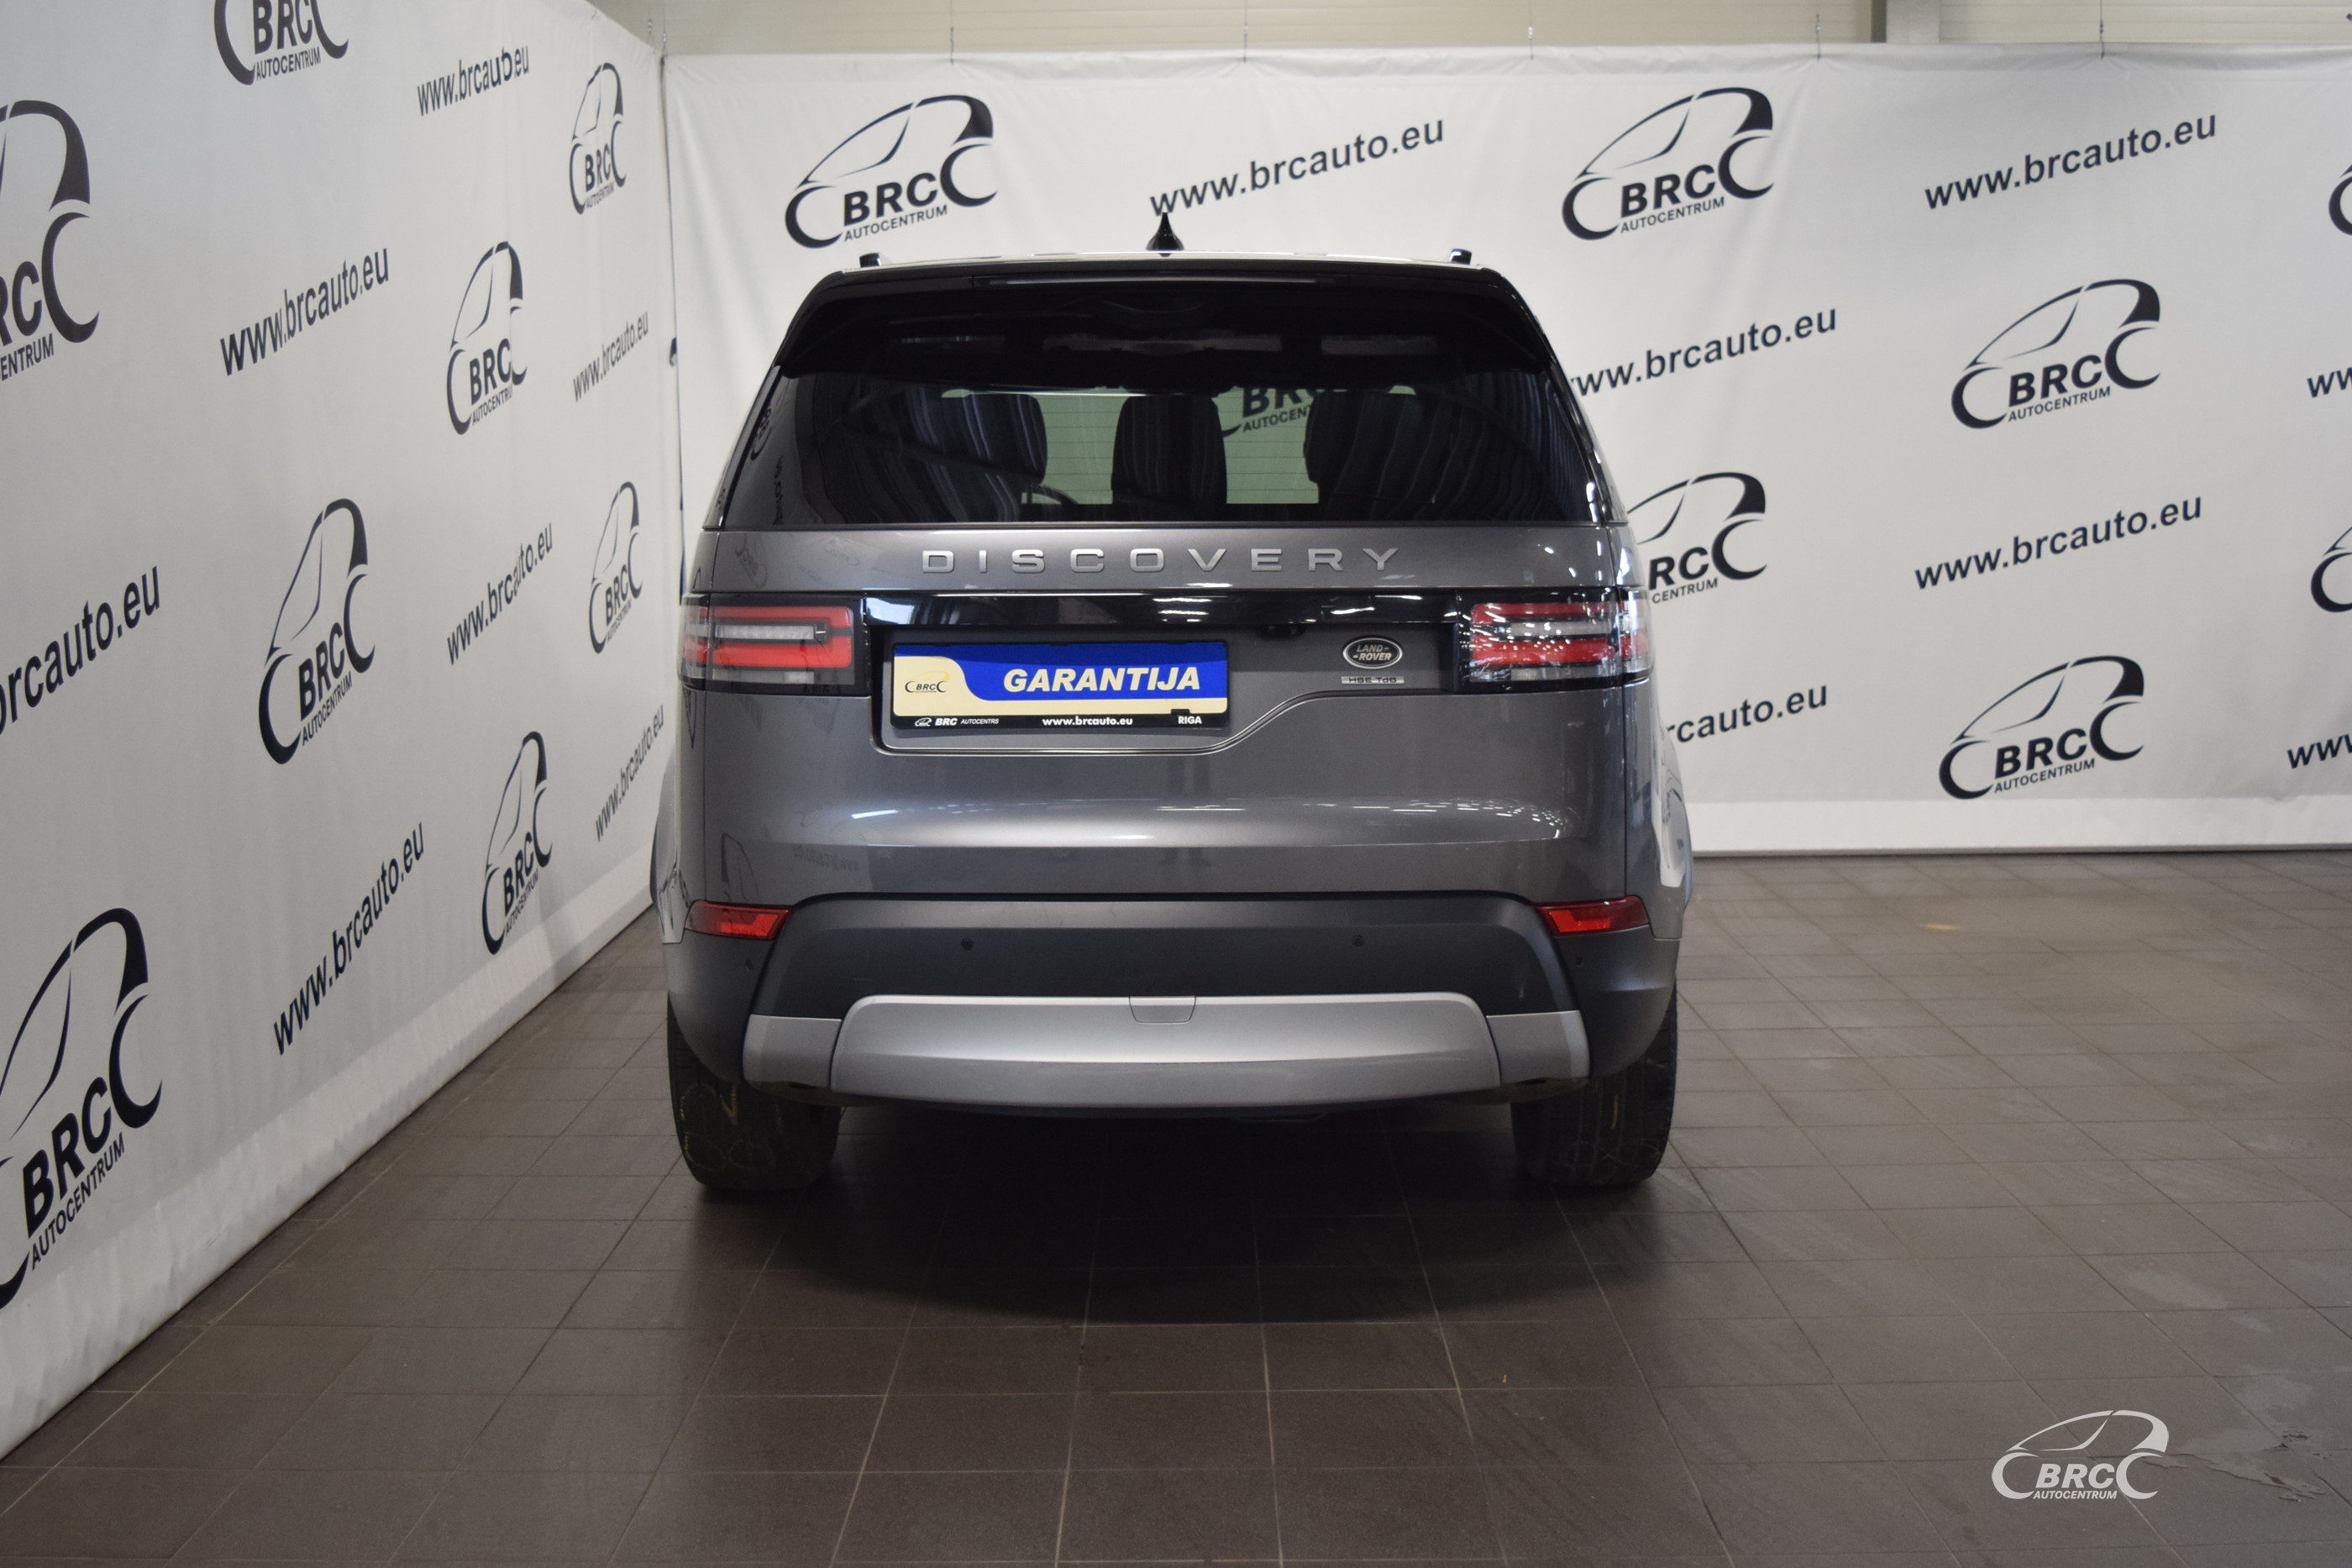 Land Rover Discovery Td6 HSE 7 seats